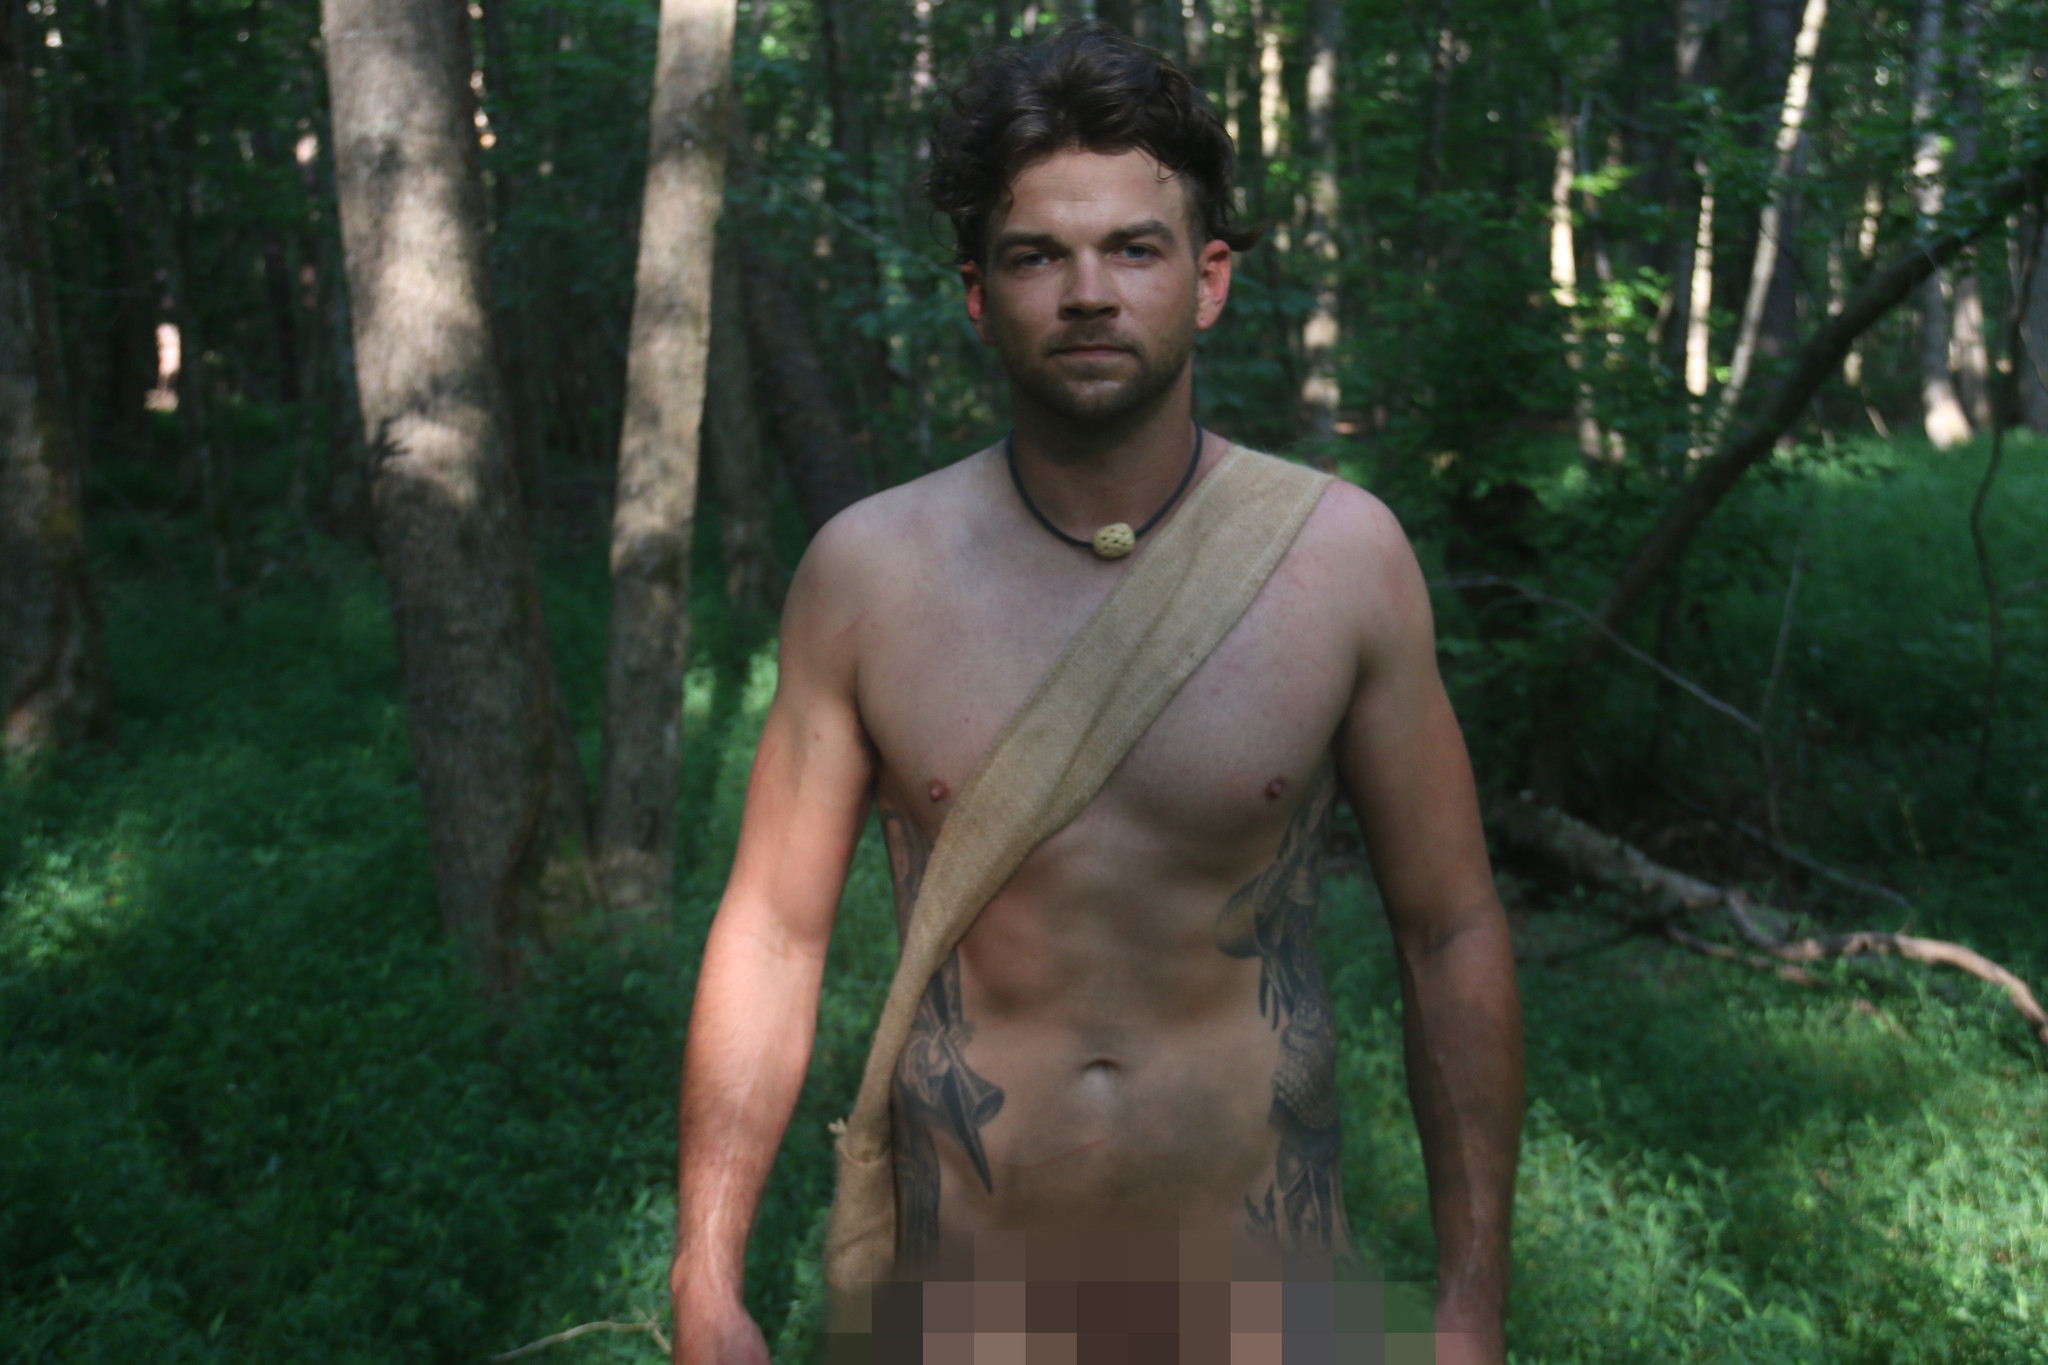 naked and afraid cute man